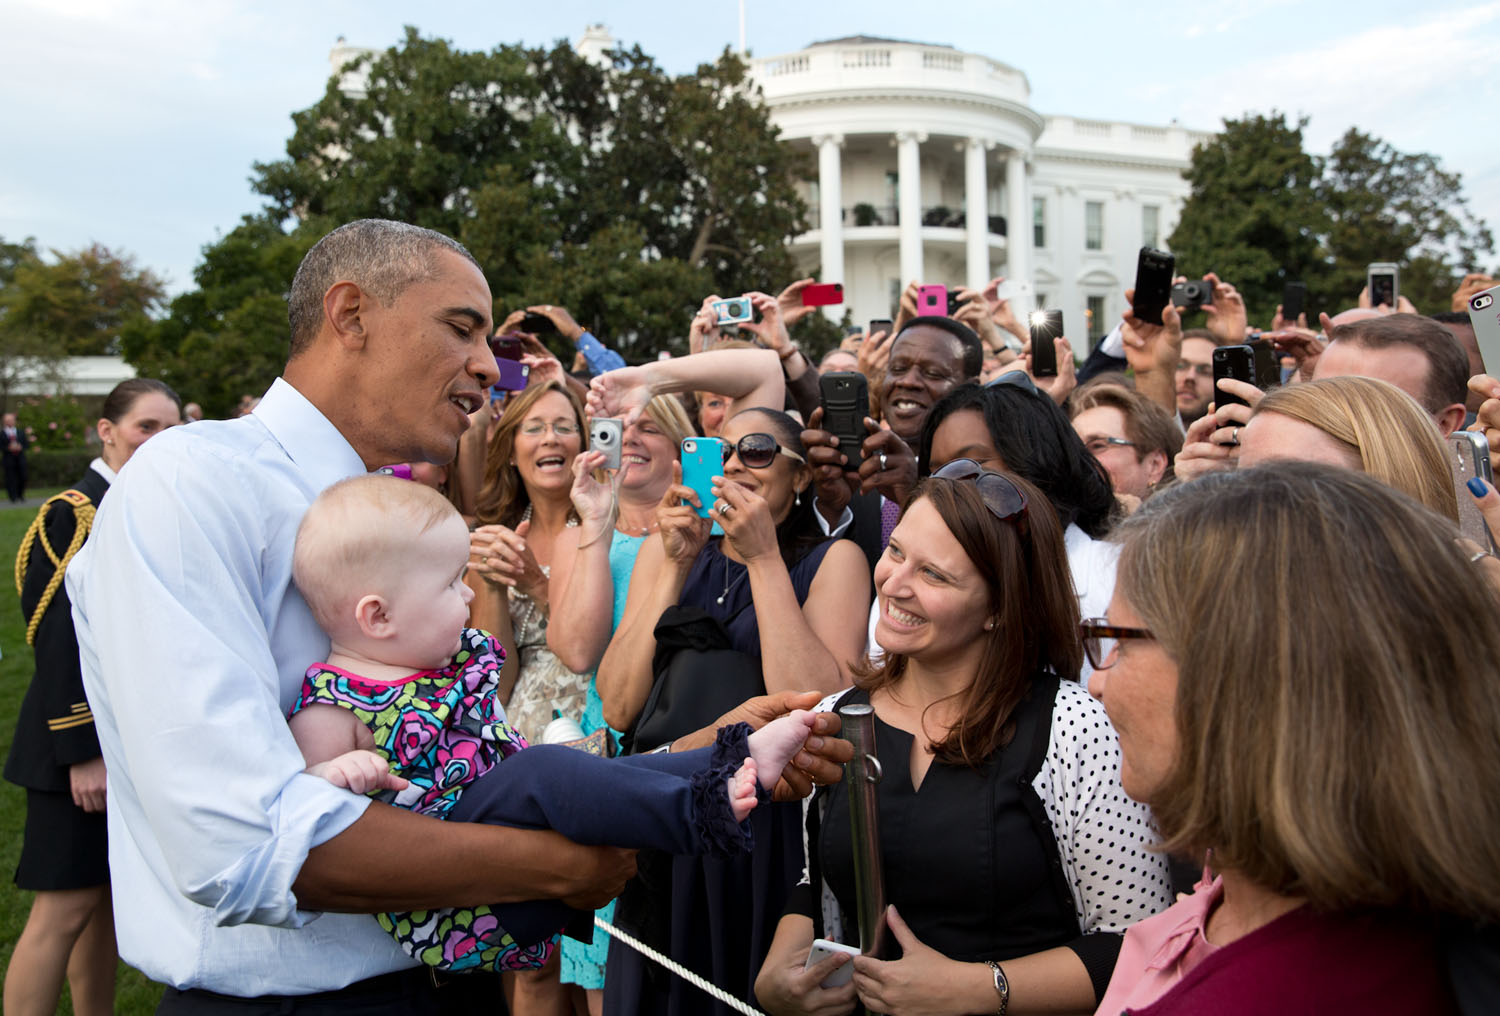 The President checks out a baby's foot while greeting guests at a picnic on the South Lawn of the White House. Official White House photograph by Pete Souza.